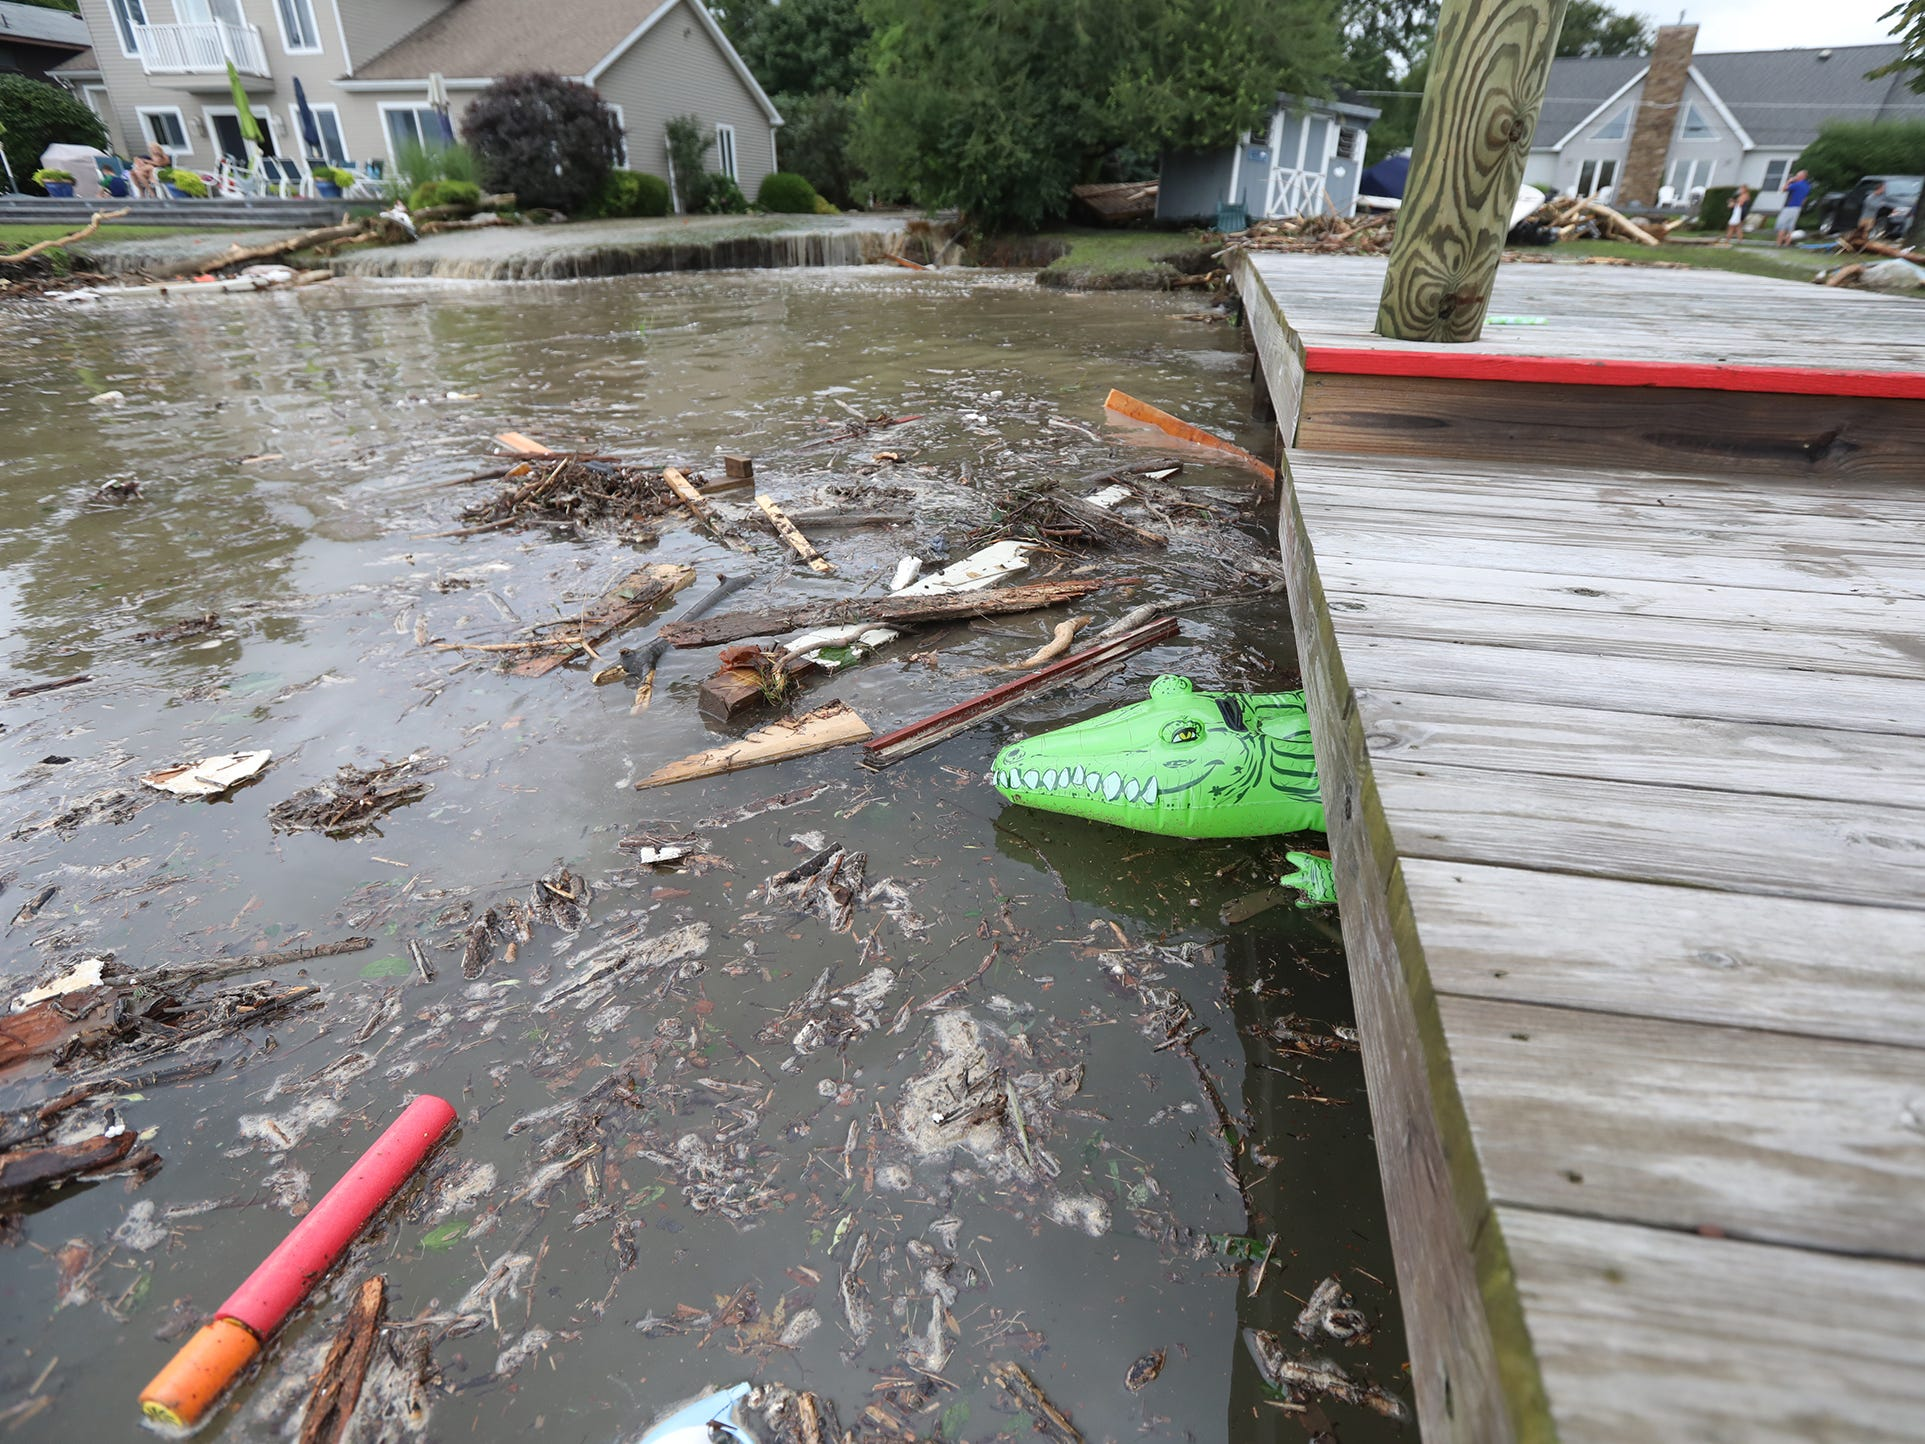 Some possessions and debris were jammed under docks along Seneca Lake after heavy rain caused flooding at Lodi Point, New York on Tuesday, August 14, 2018.